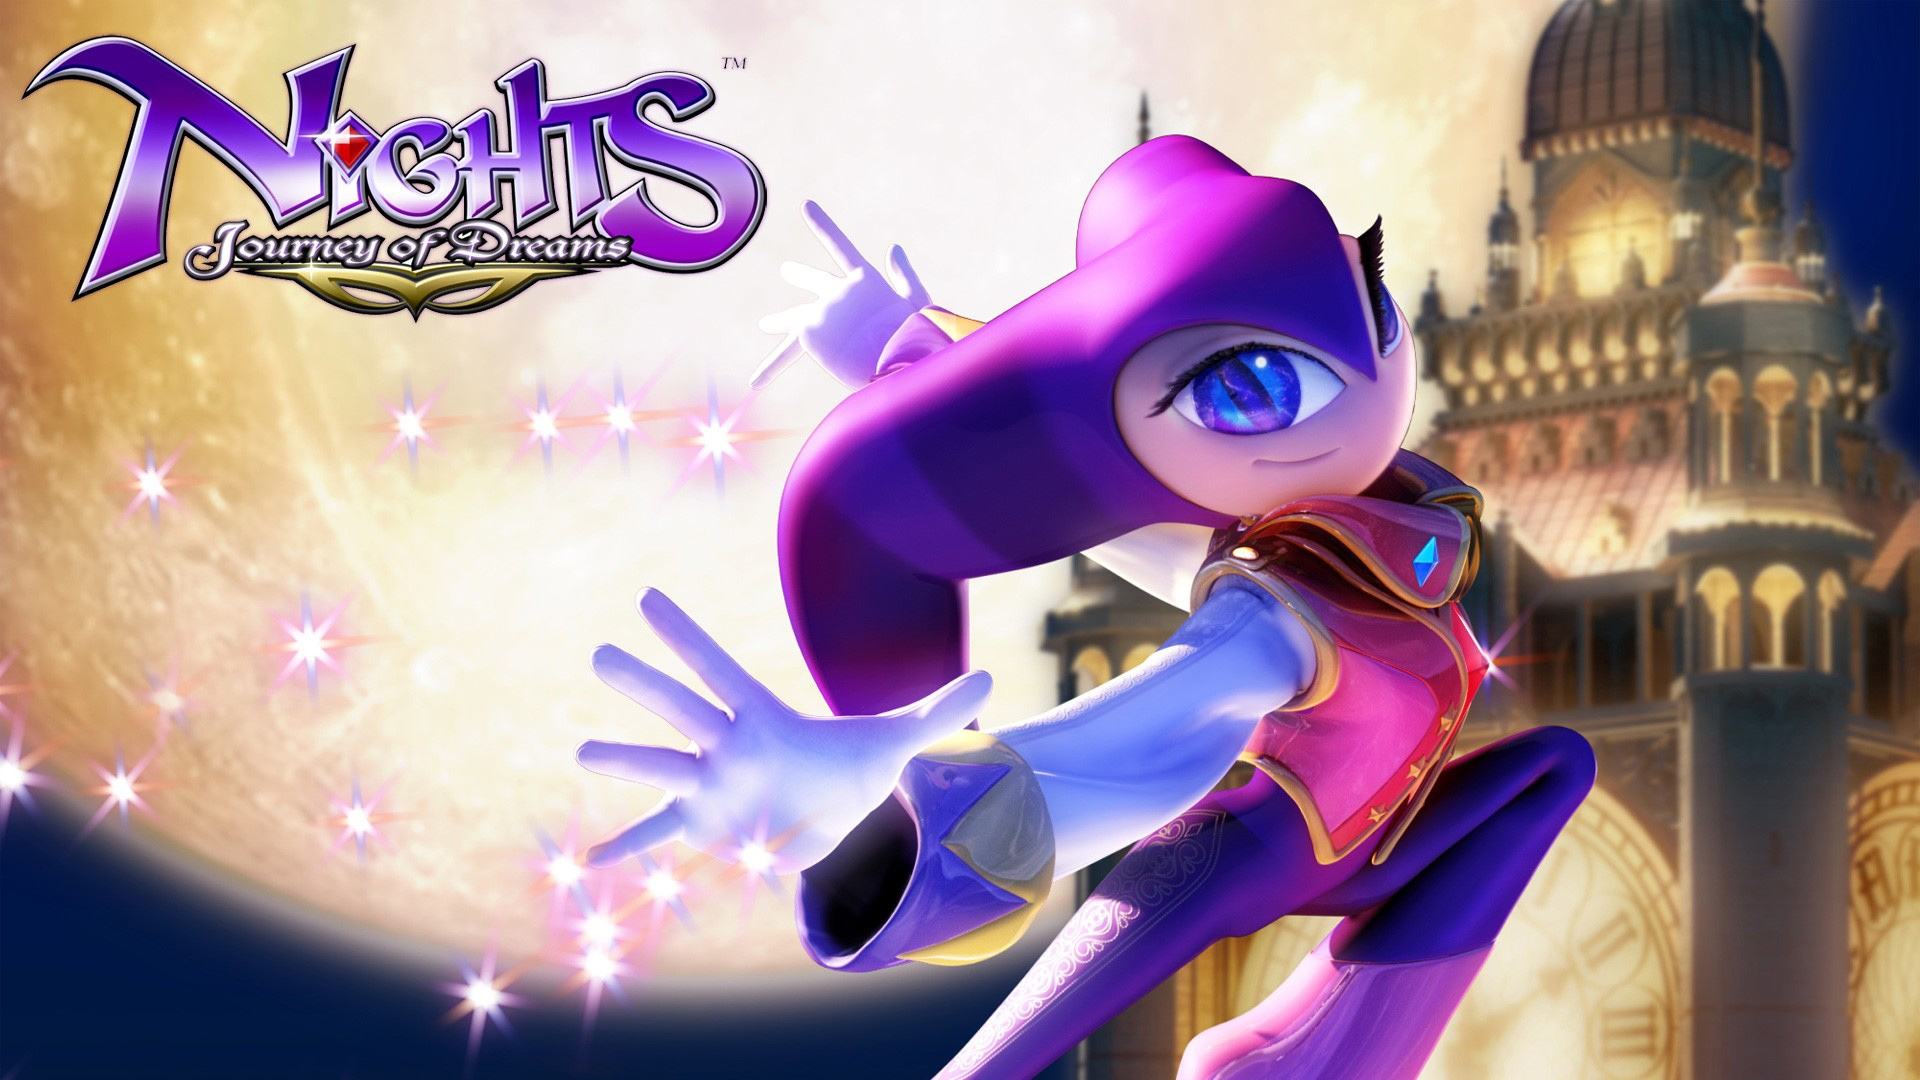 Nights Journey Of Dreams Hd Wallpaper Background Image 1920x1080 Id 750690 Wallpaper Abyss